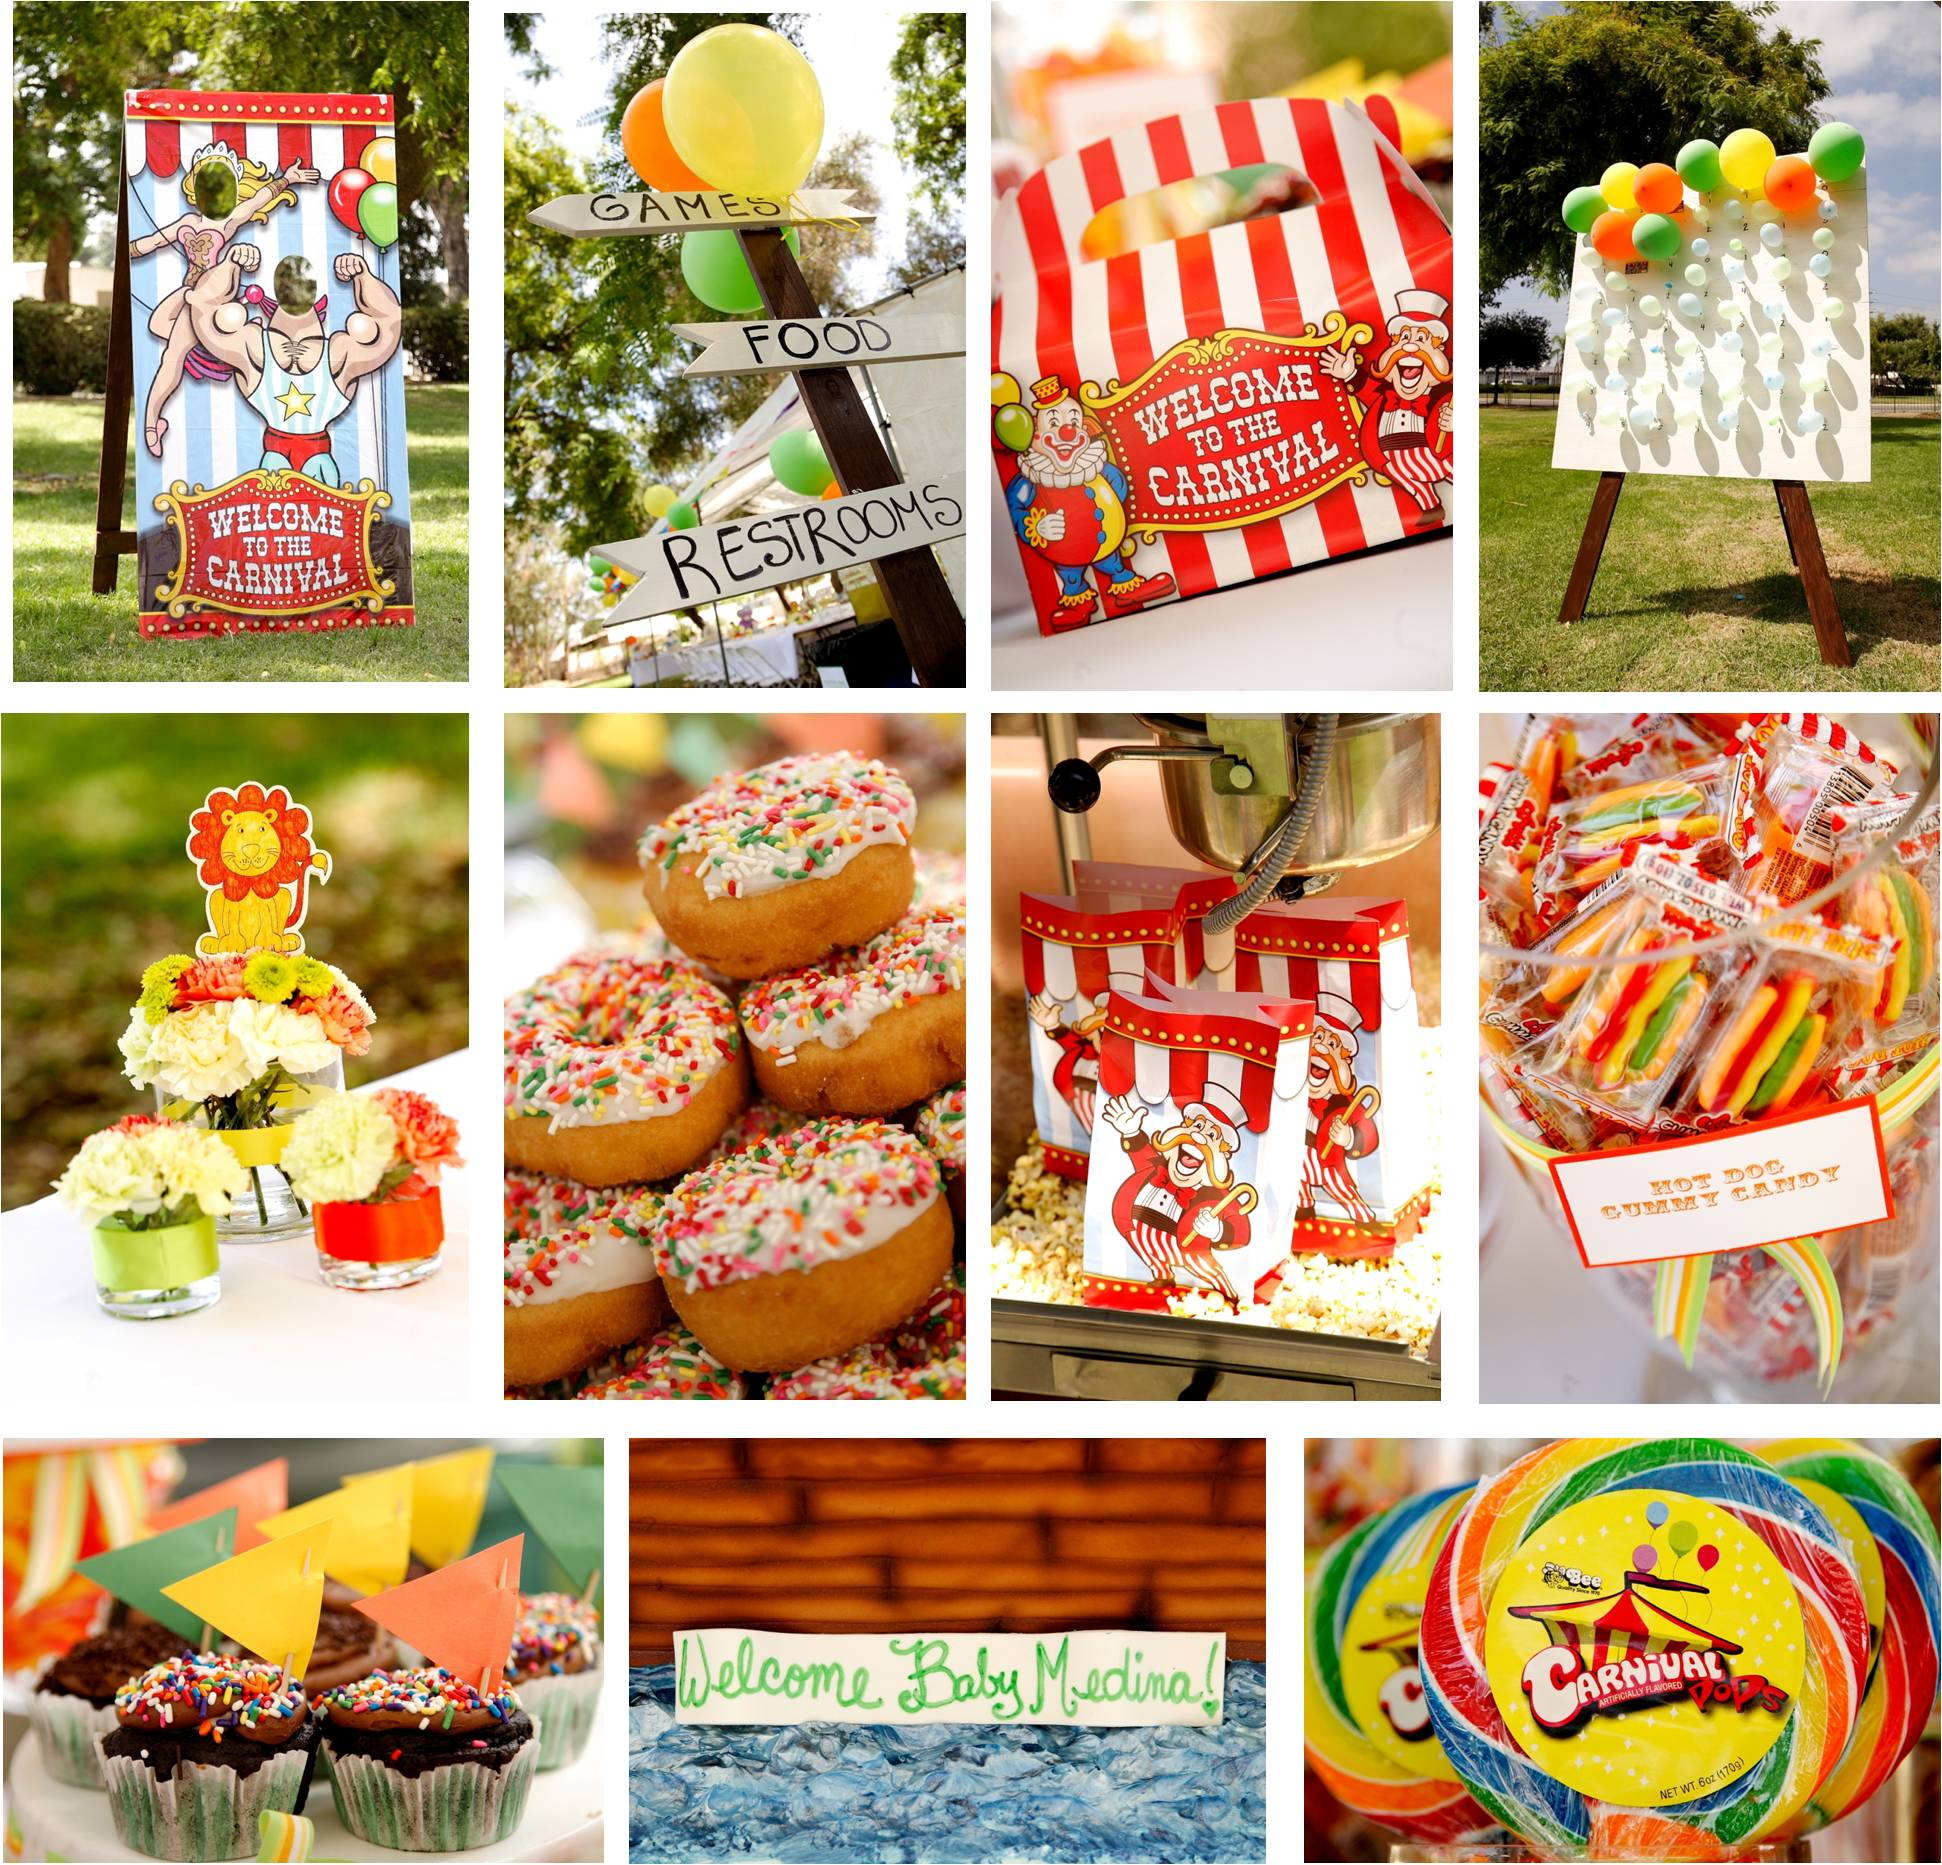 Carnival themed baby shower a stunning affair 39 s weblog - Carnival party menu ...